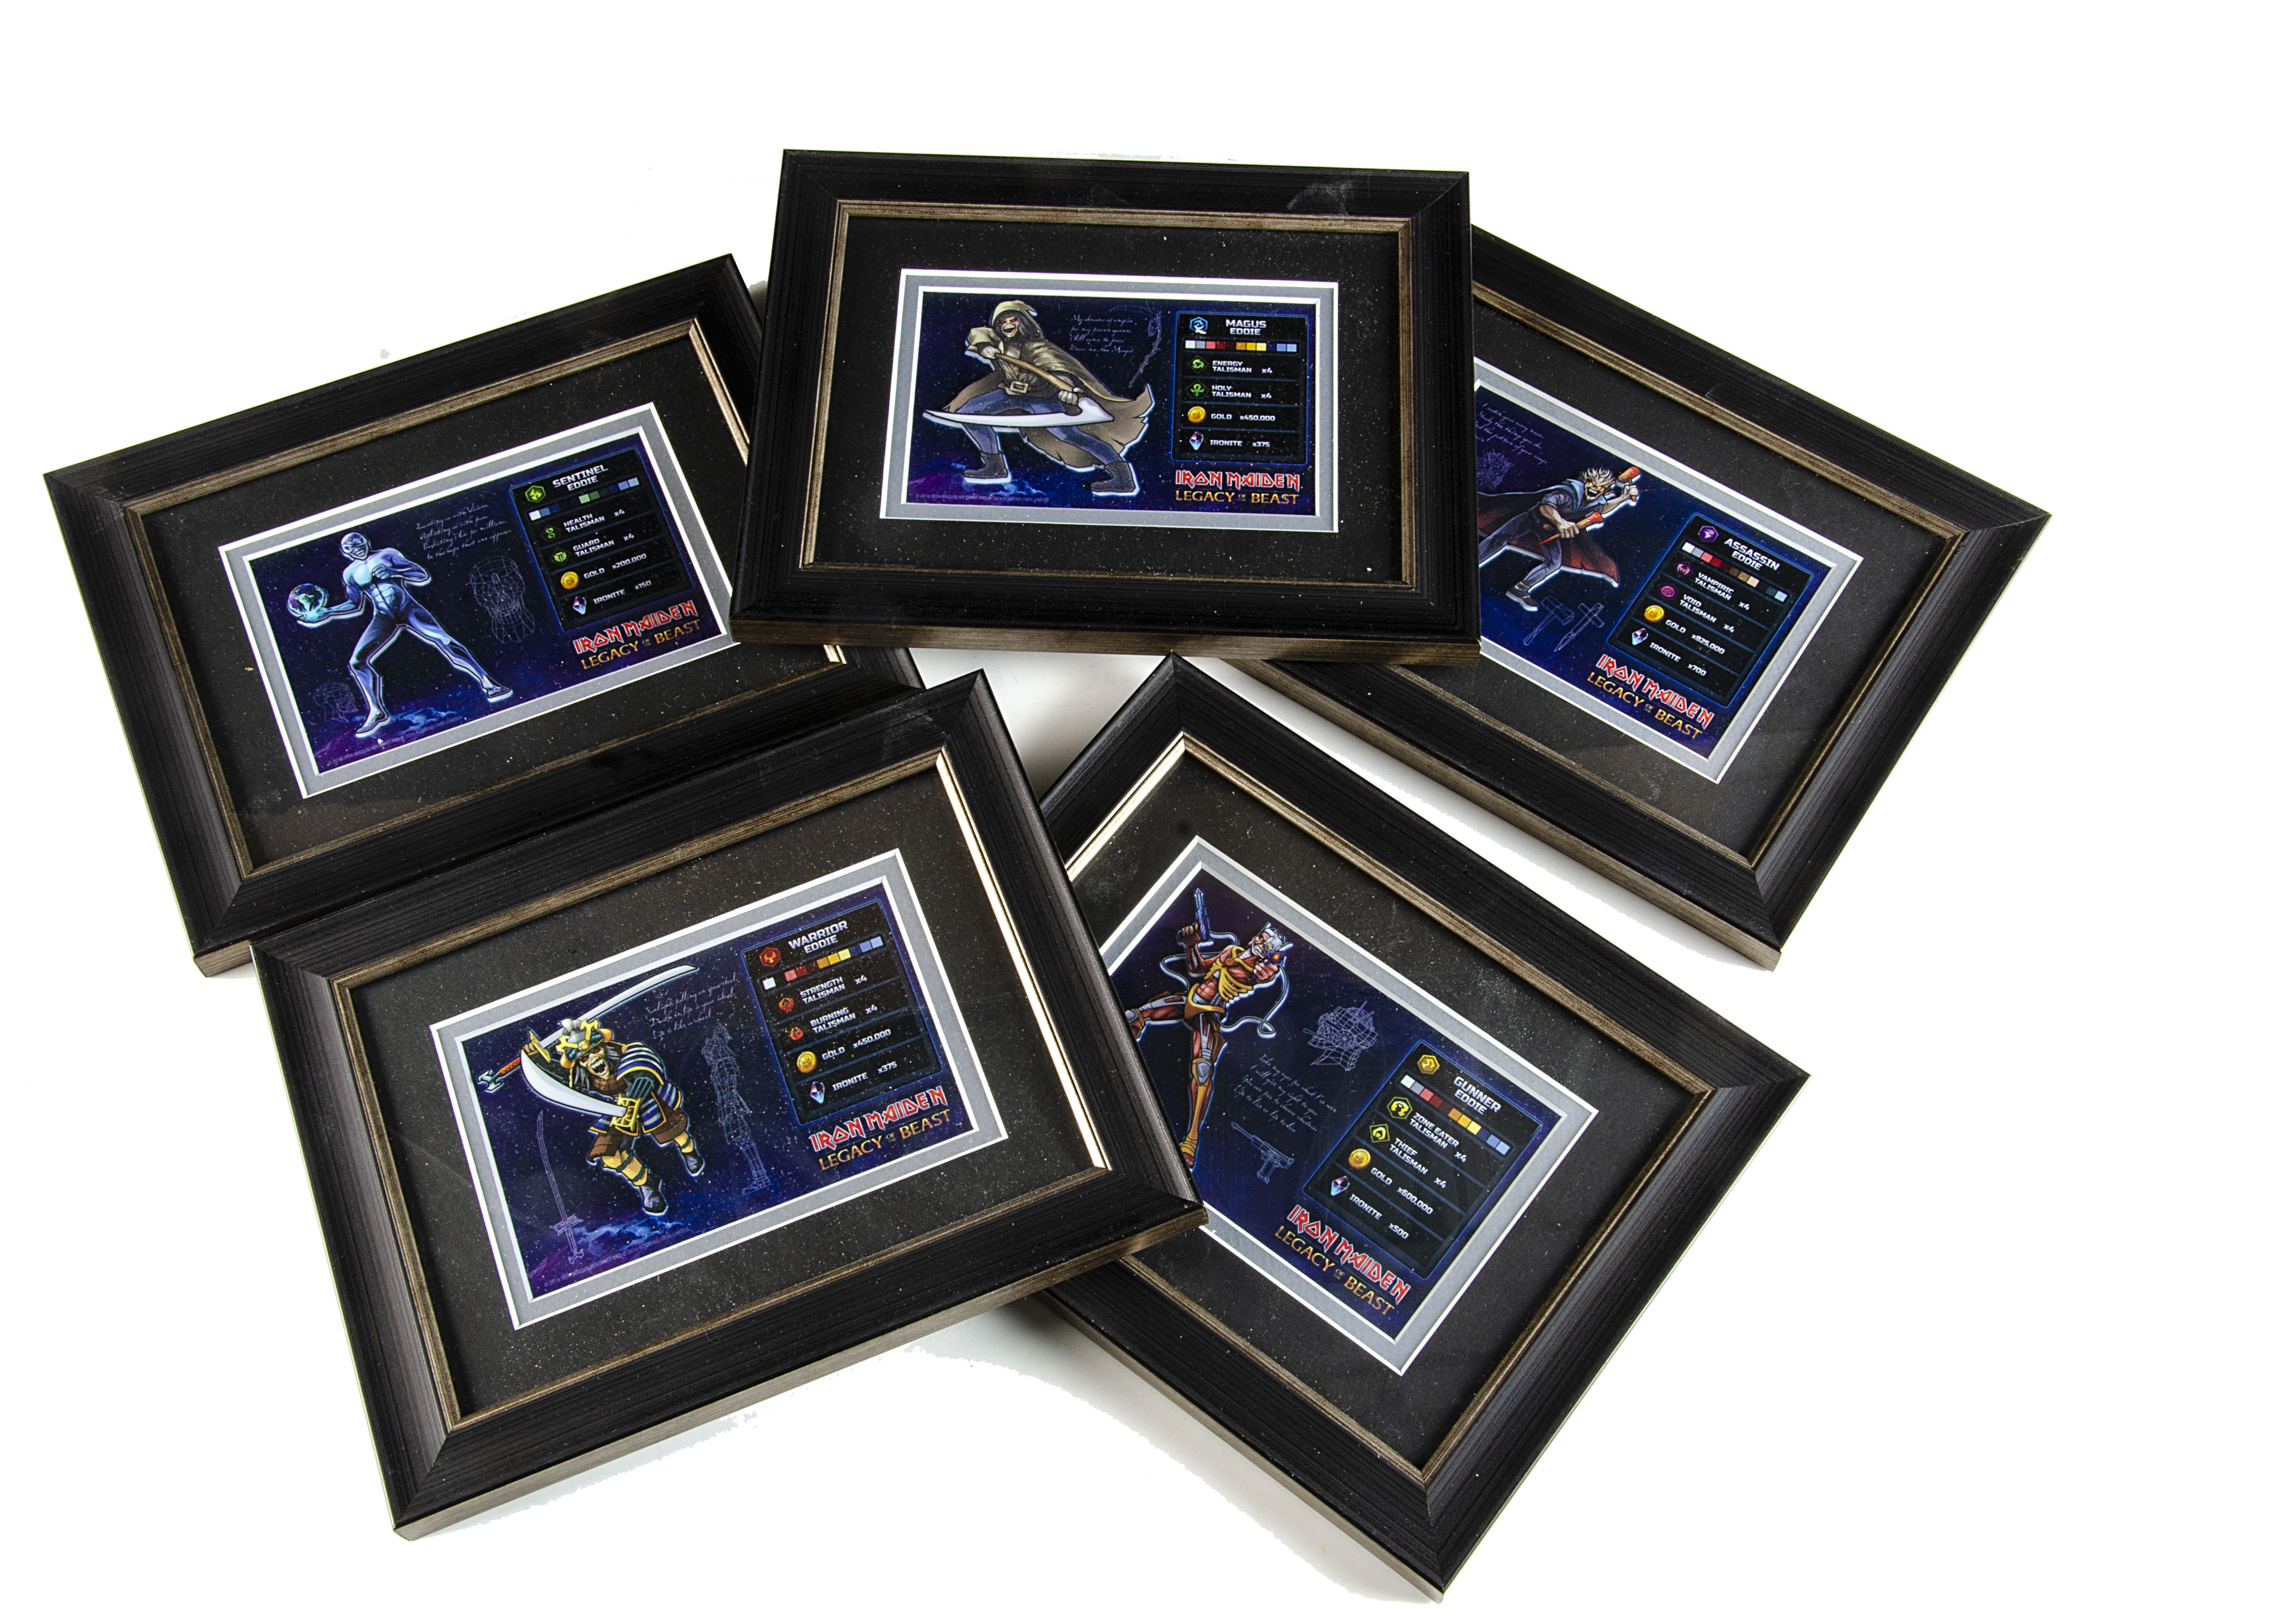 Iron Maiden / Legacy of the Beast Game, five framed and glazed 'Value' 3D Cards for the Legacy of